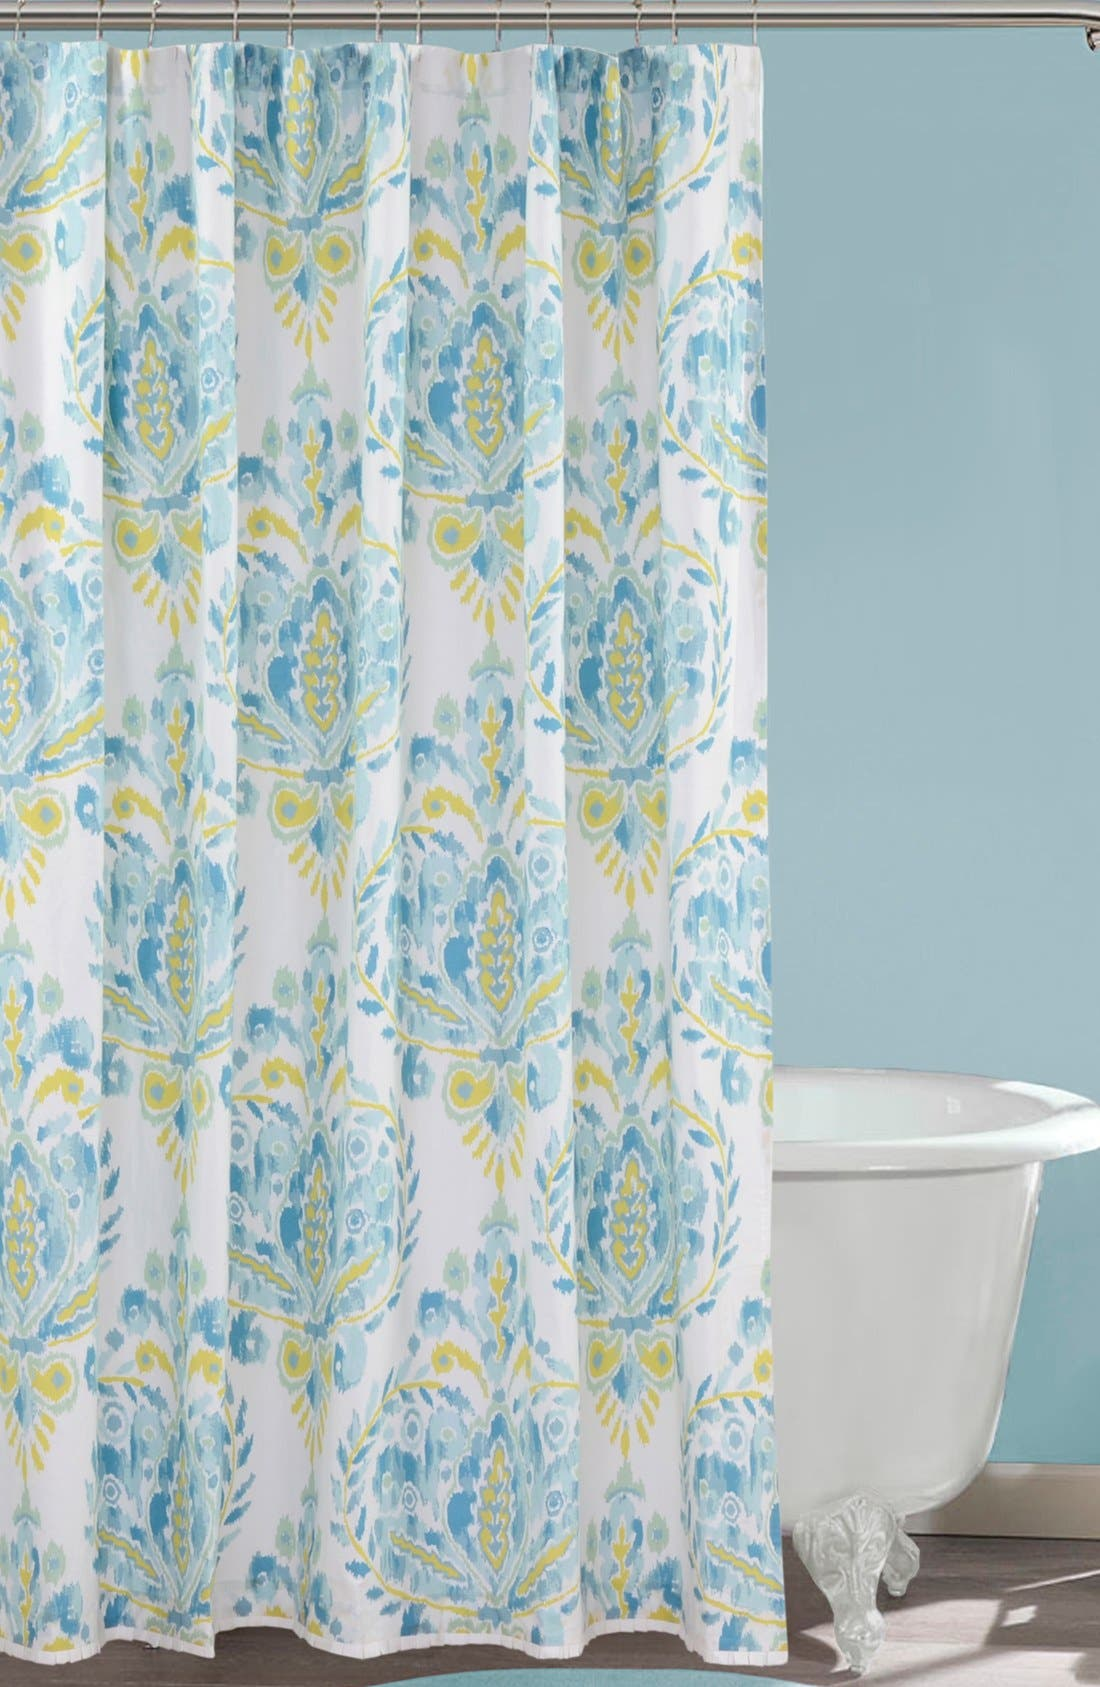 Main Image - Dena Home 'Breeze' Shower Curtain